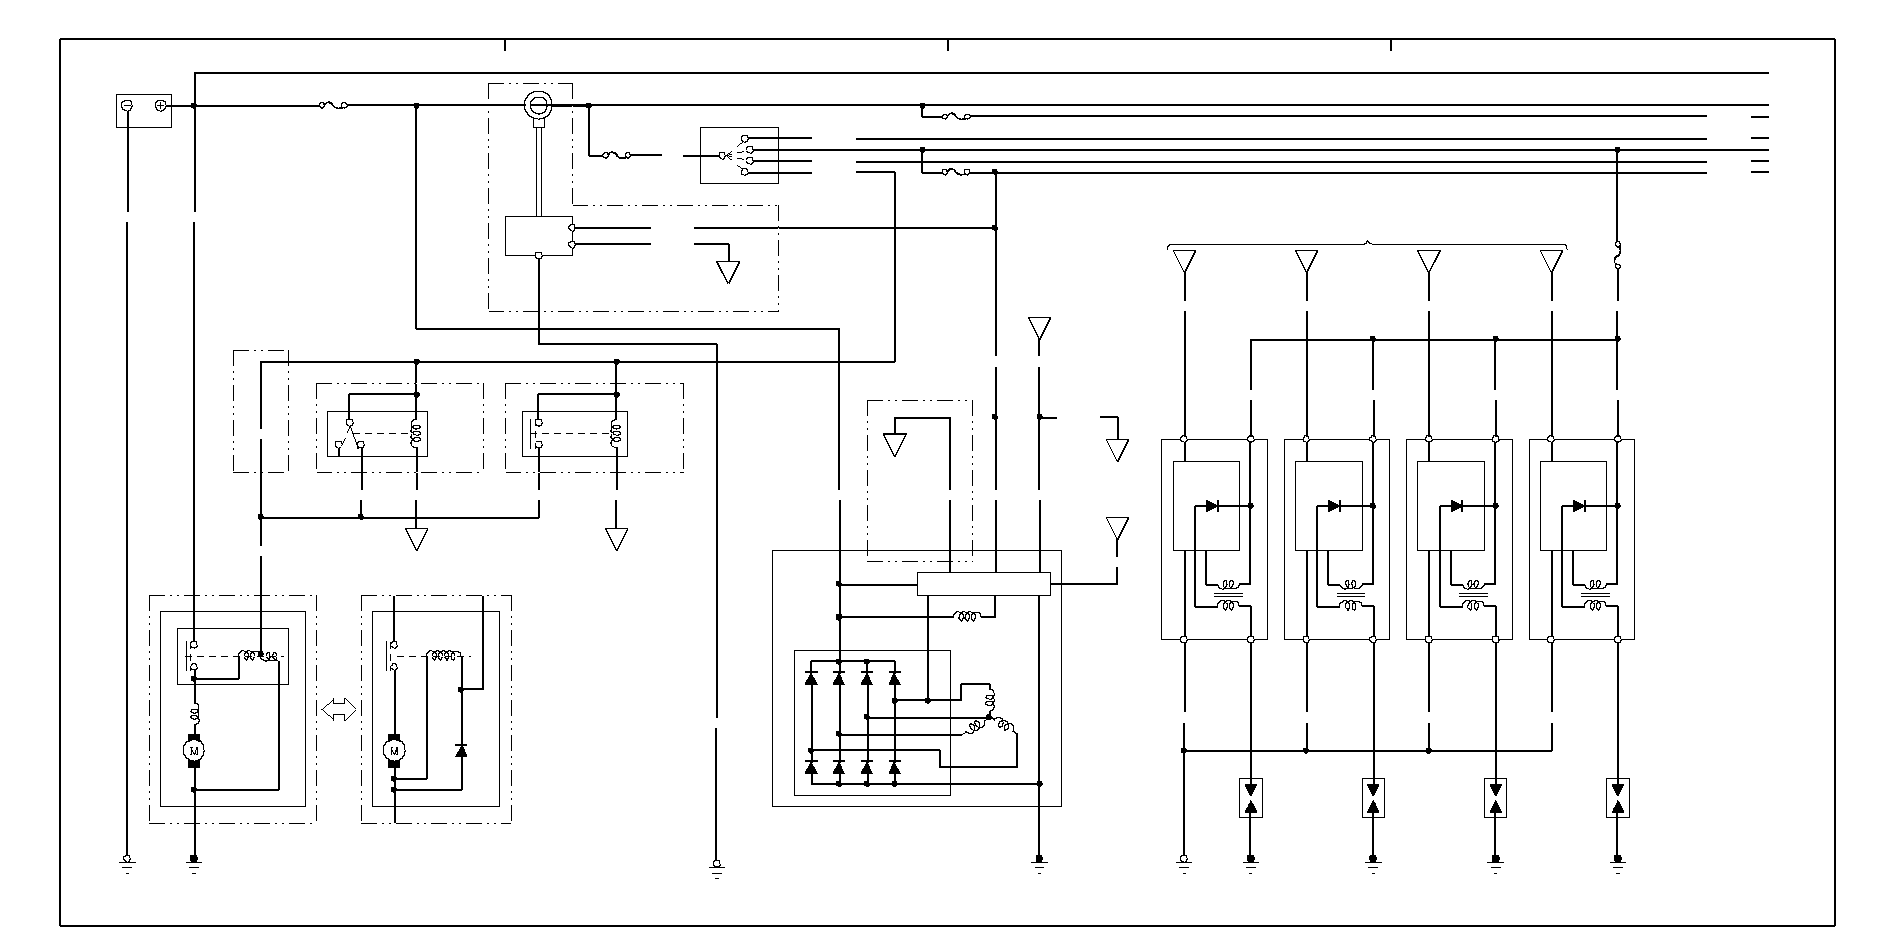 S9A2E00000000000000EBAD01 wiring diagram honda cr v 2002, 2003, 2004, 2005 service manual car wiring diagrams at bakdesigns.co